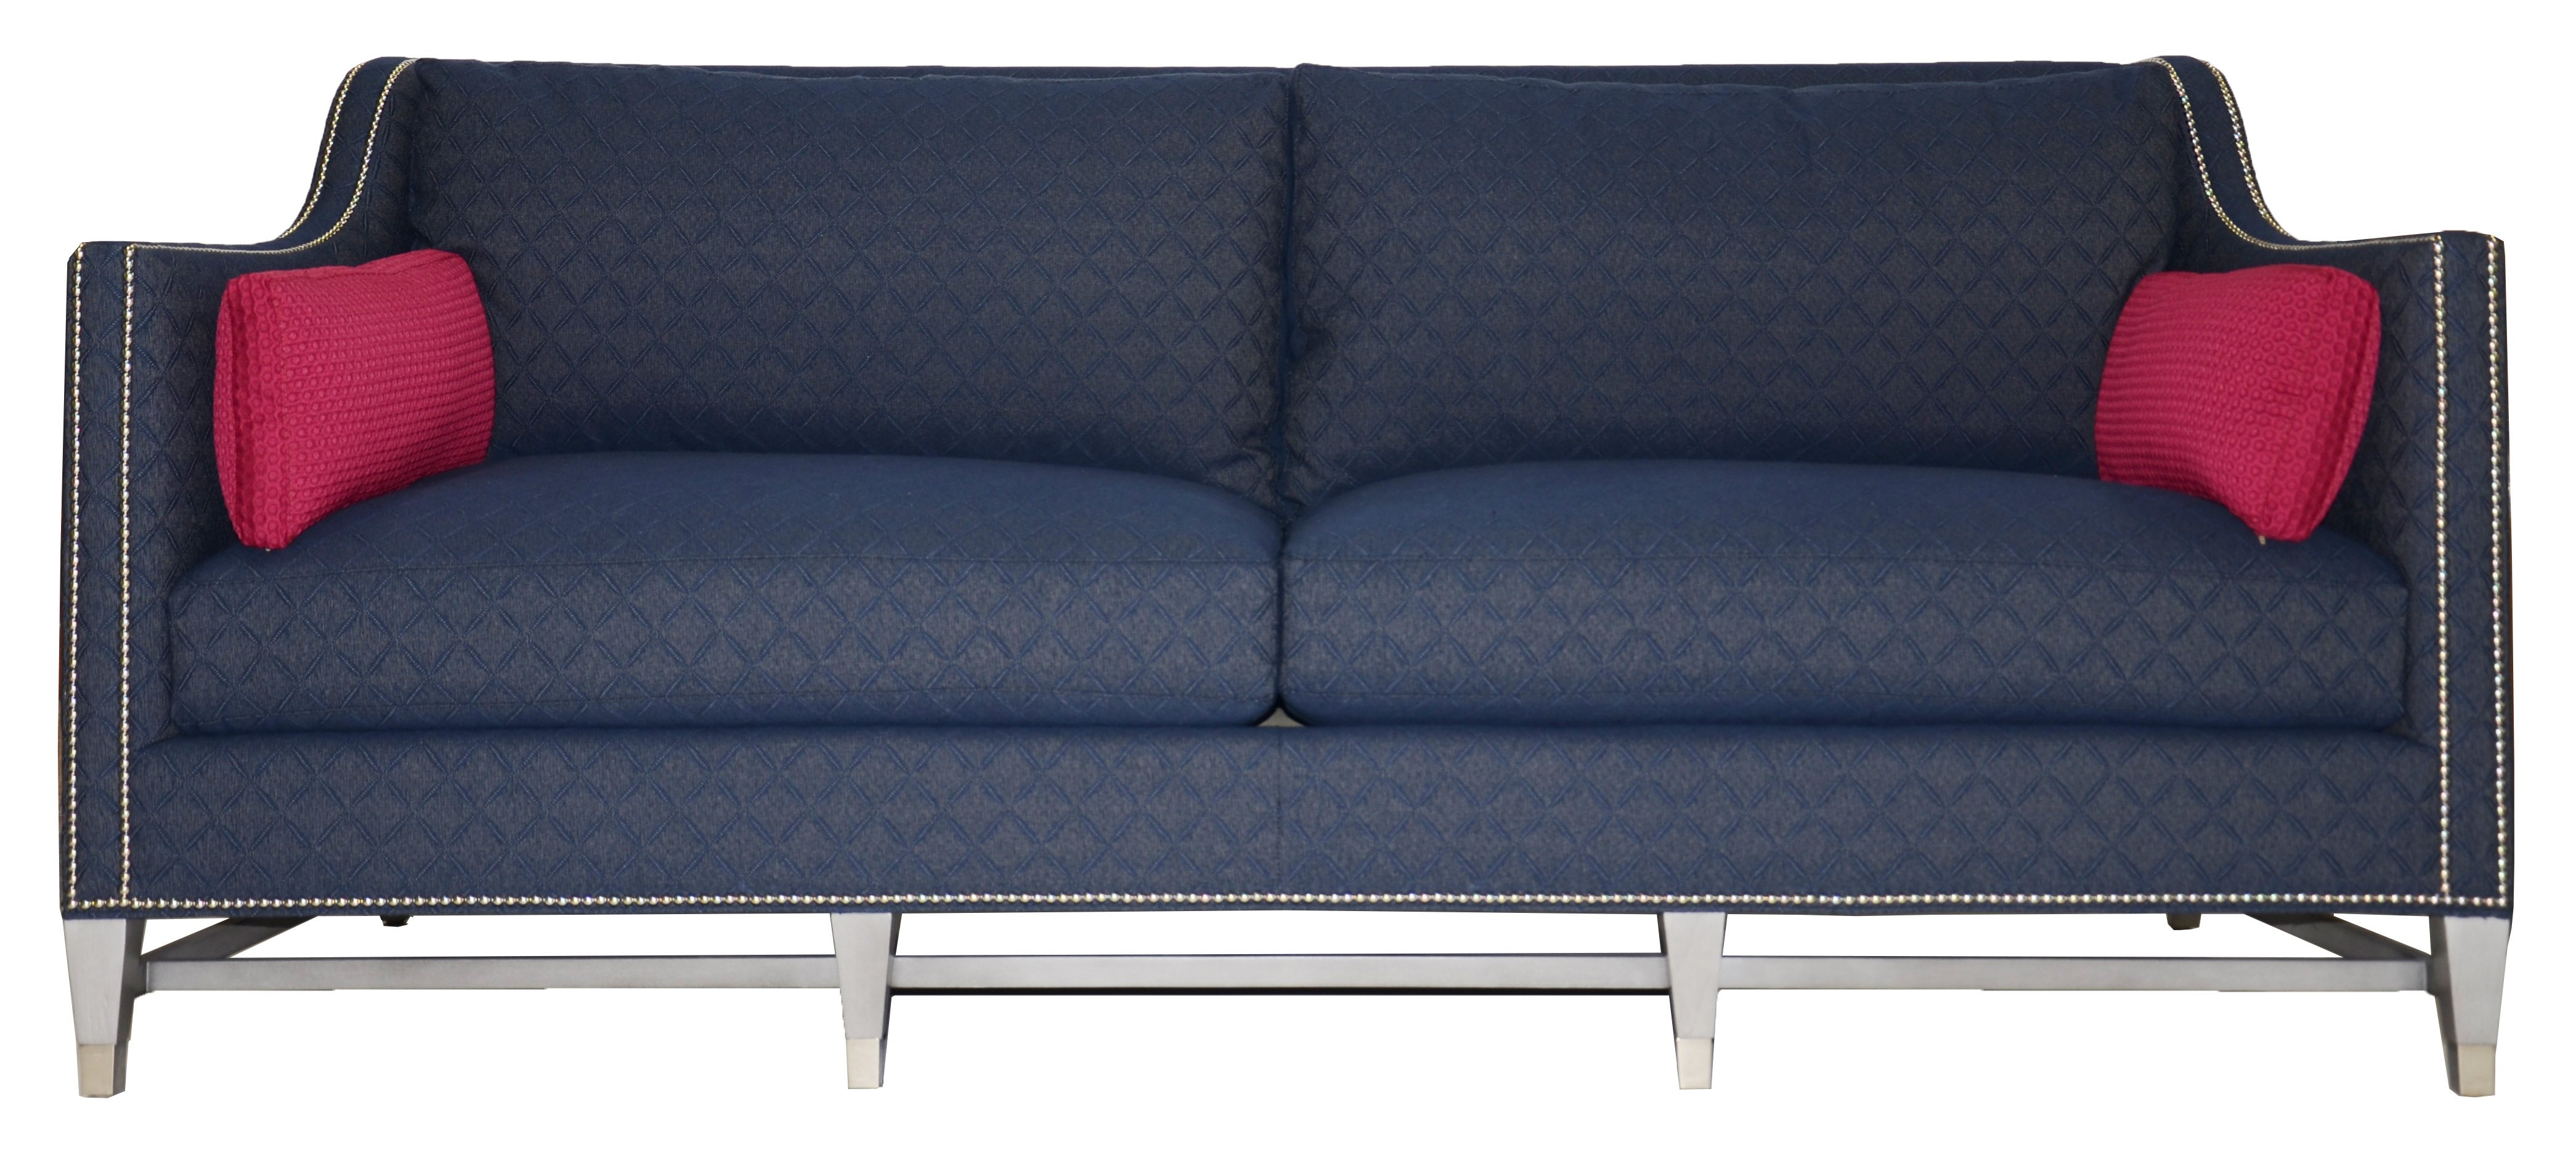 Vanguard Furniture Our Products V444 2s Justice Sofa